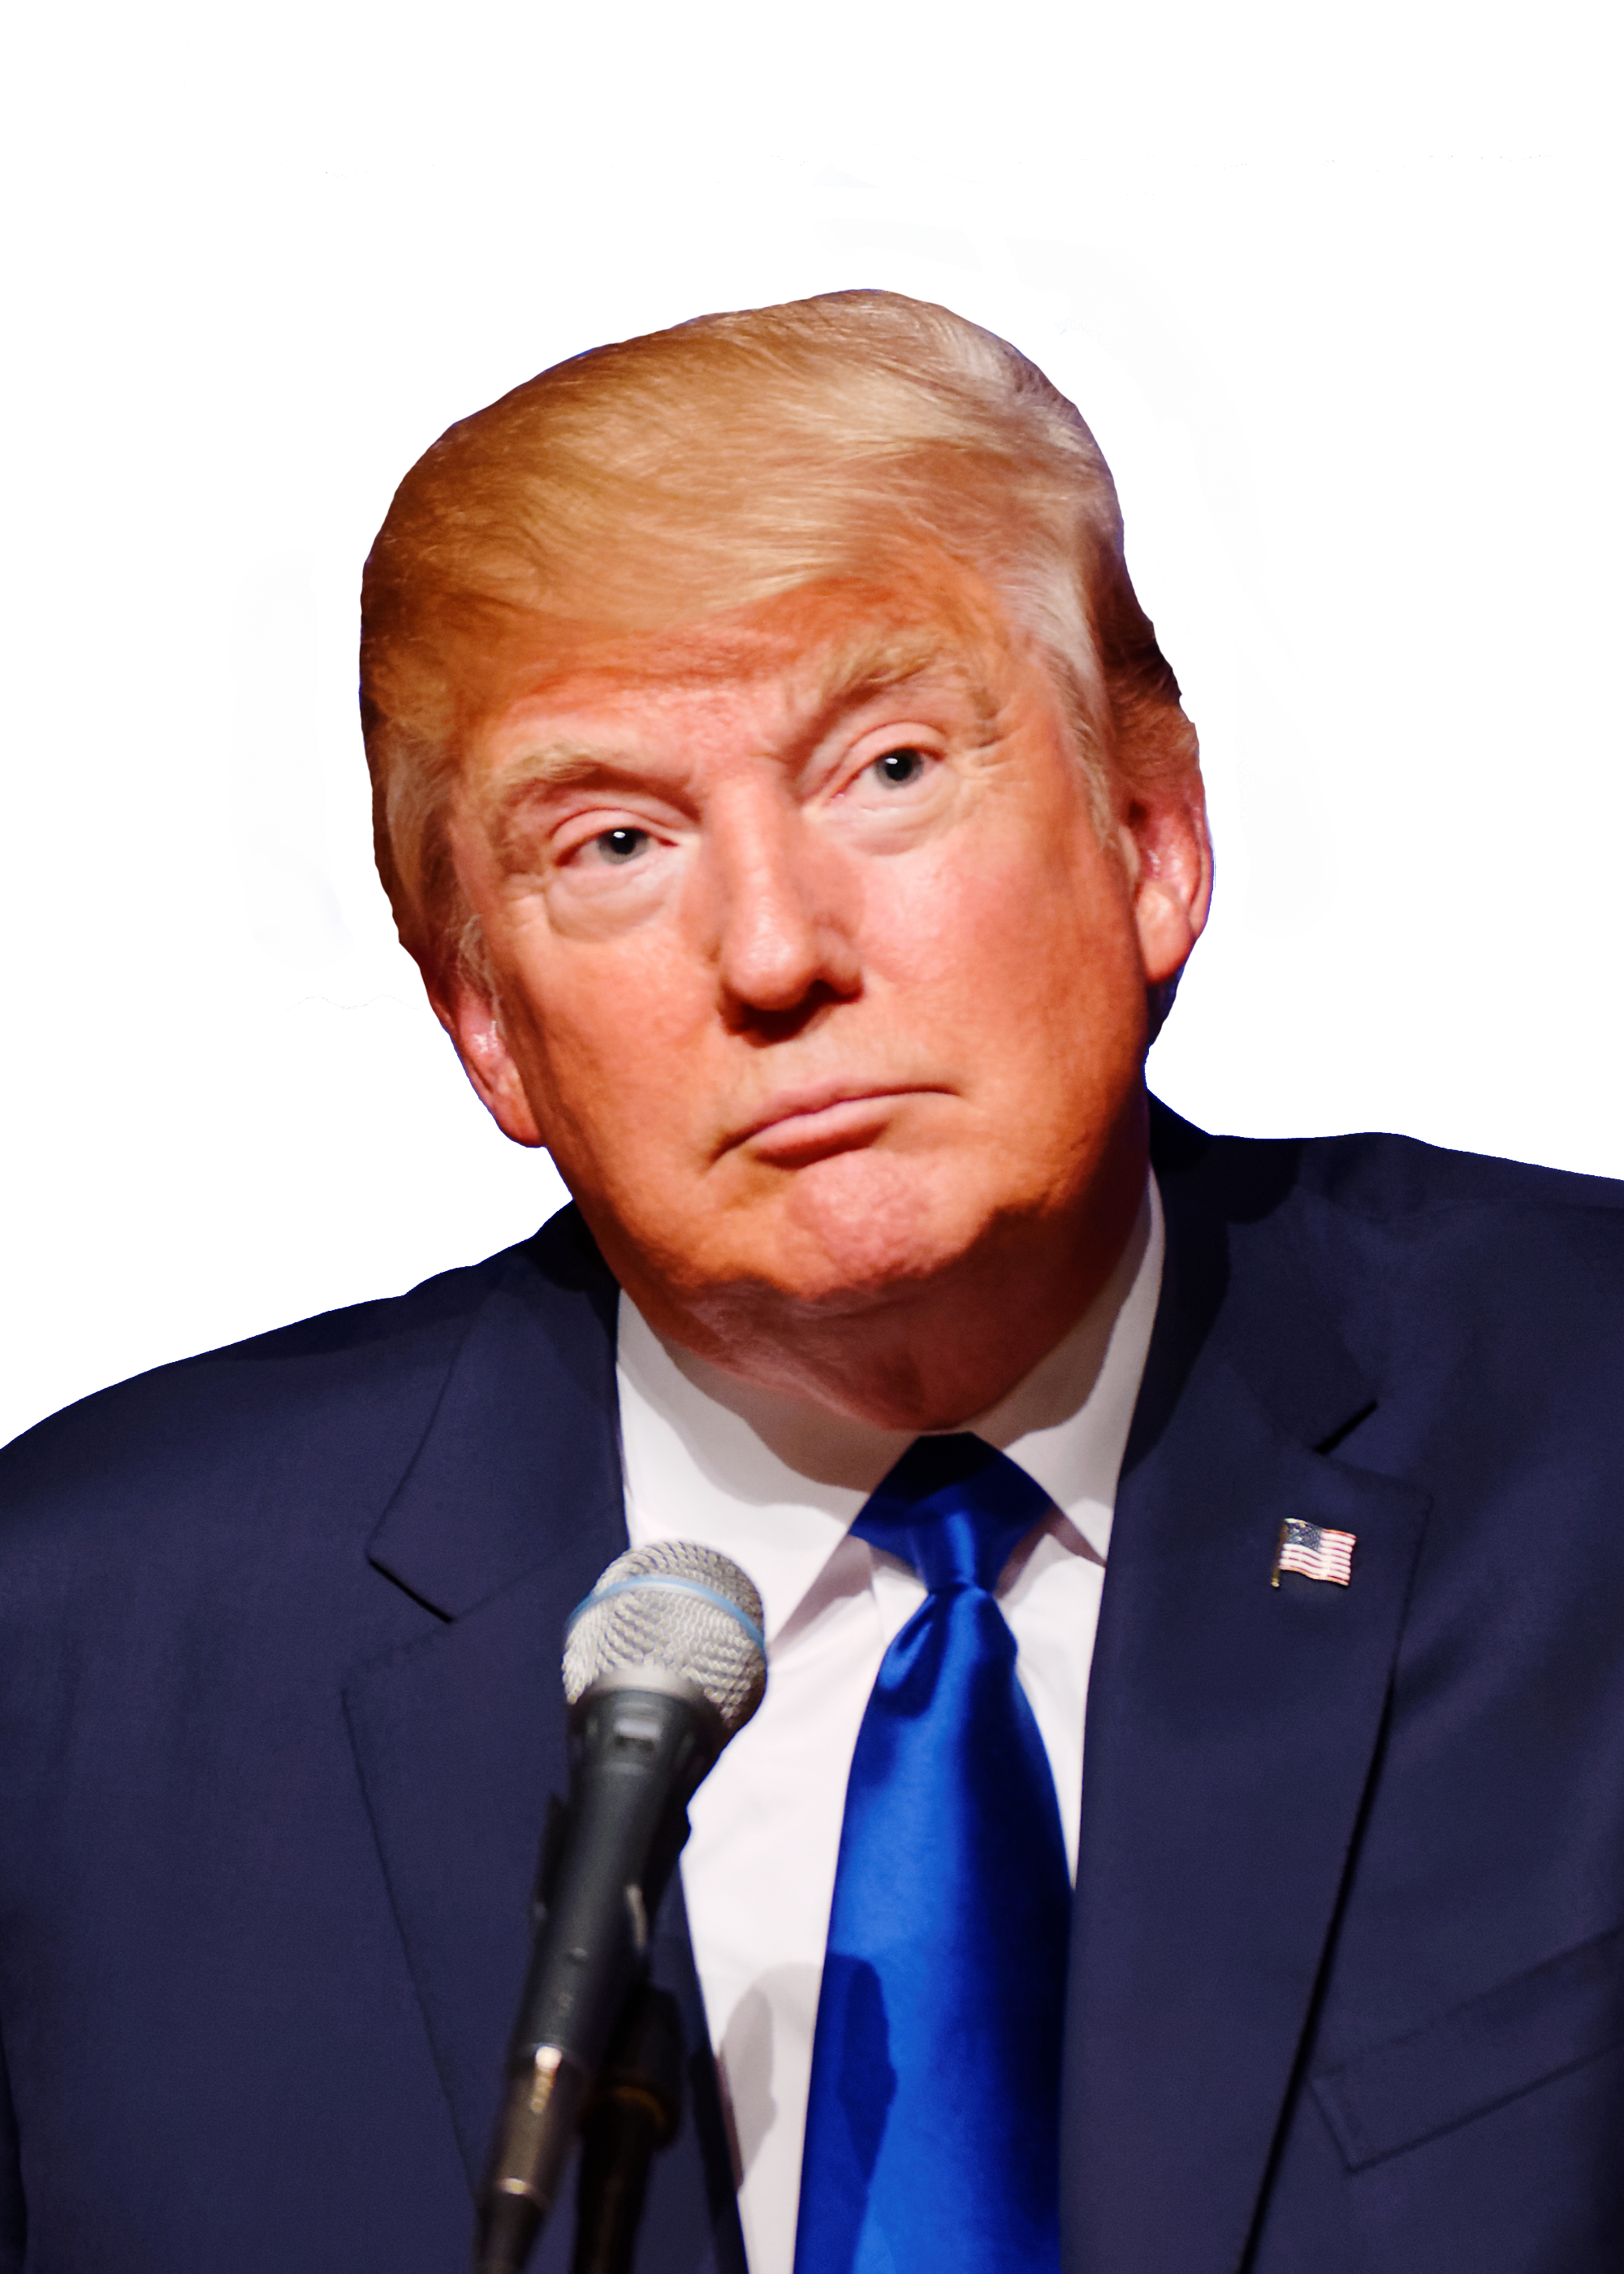 File Trump Transparent Png Wikimedia Commons Download donald trump png free icons and png images. https commons wikimedia org wiki file trump transparent png